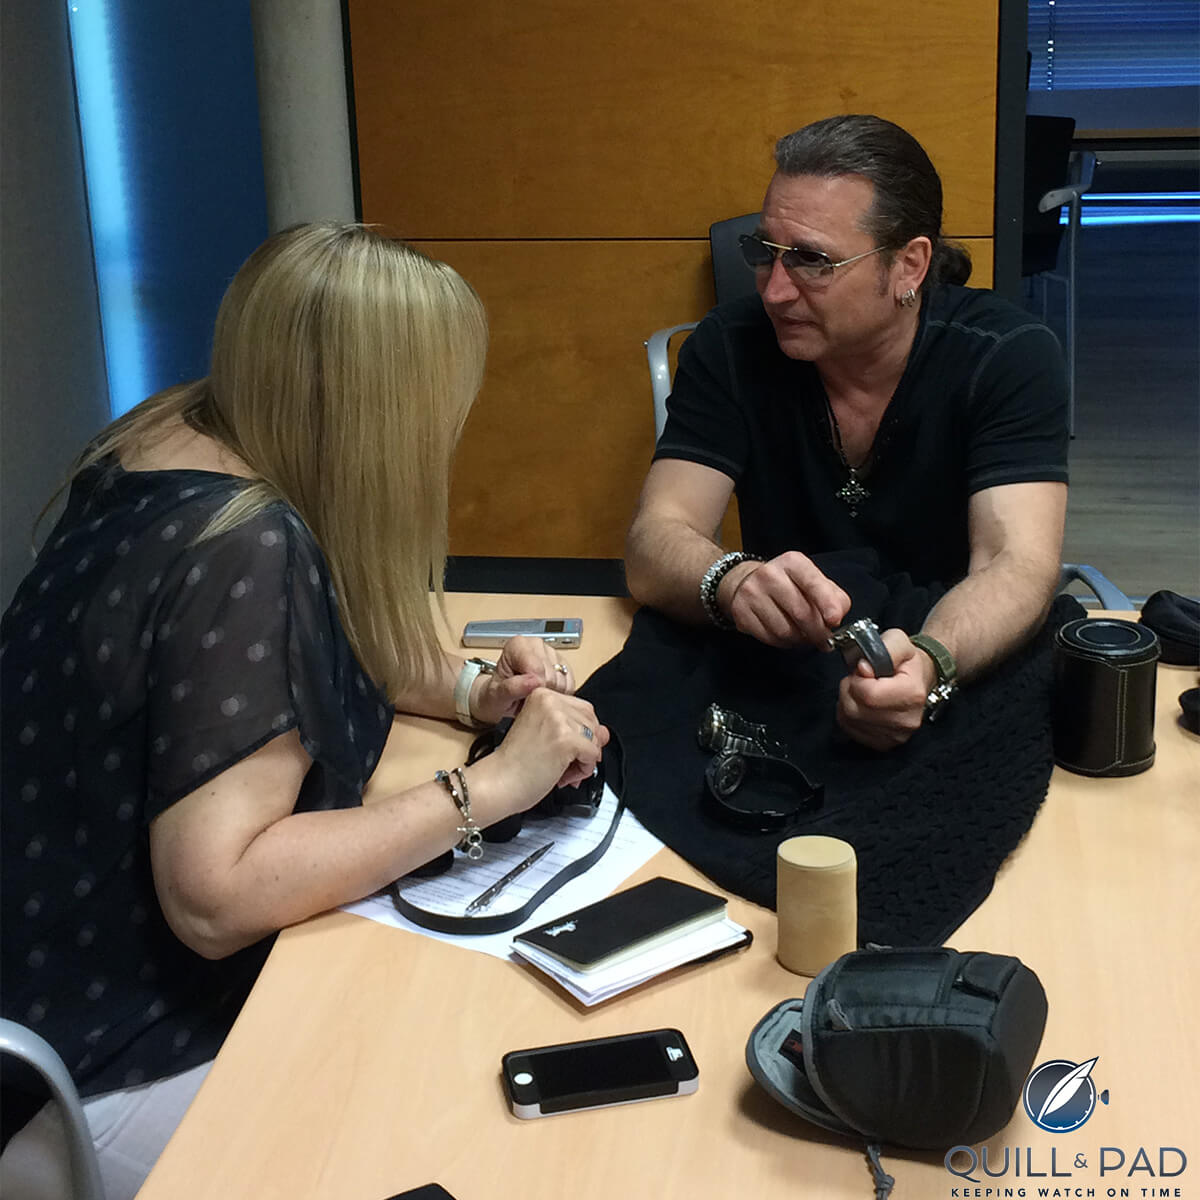 Elizabeth Doerr interviewing Eric Singer of Kiss